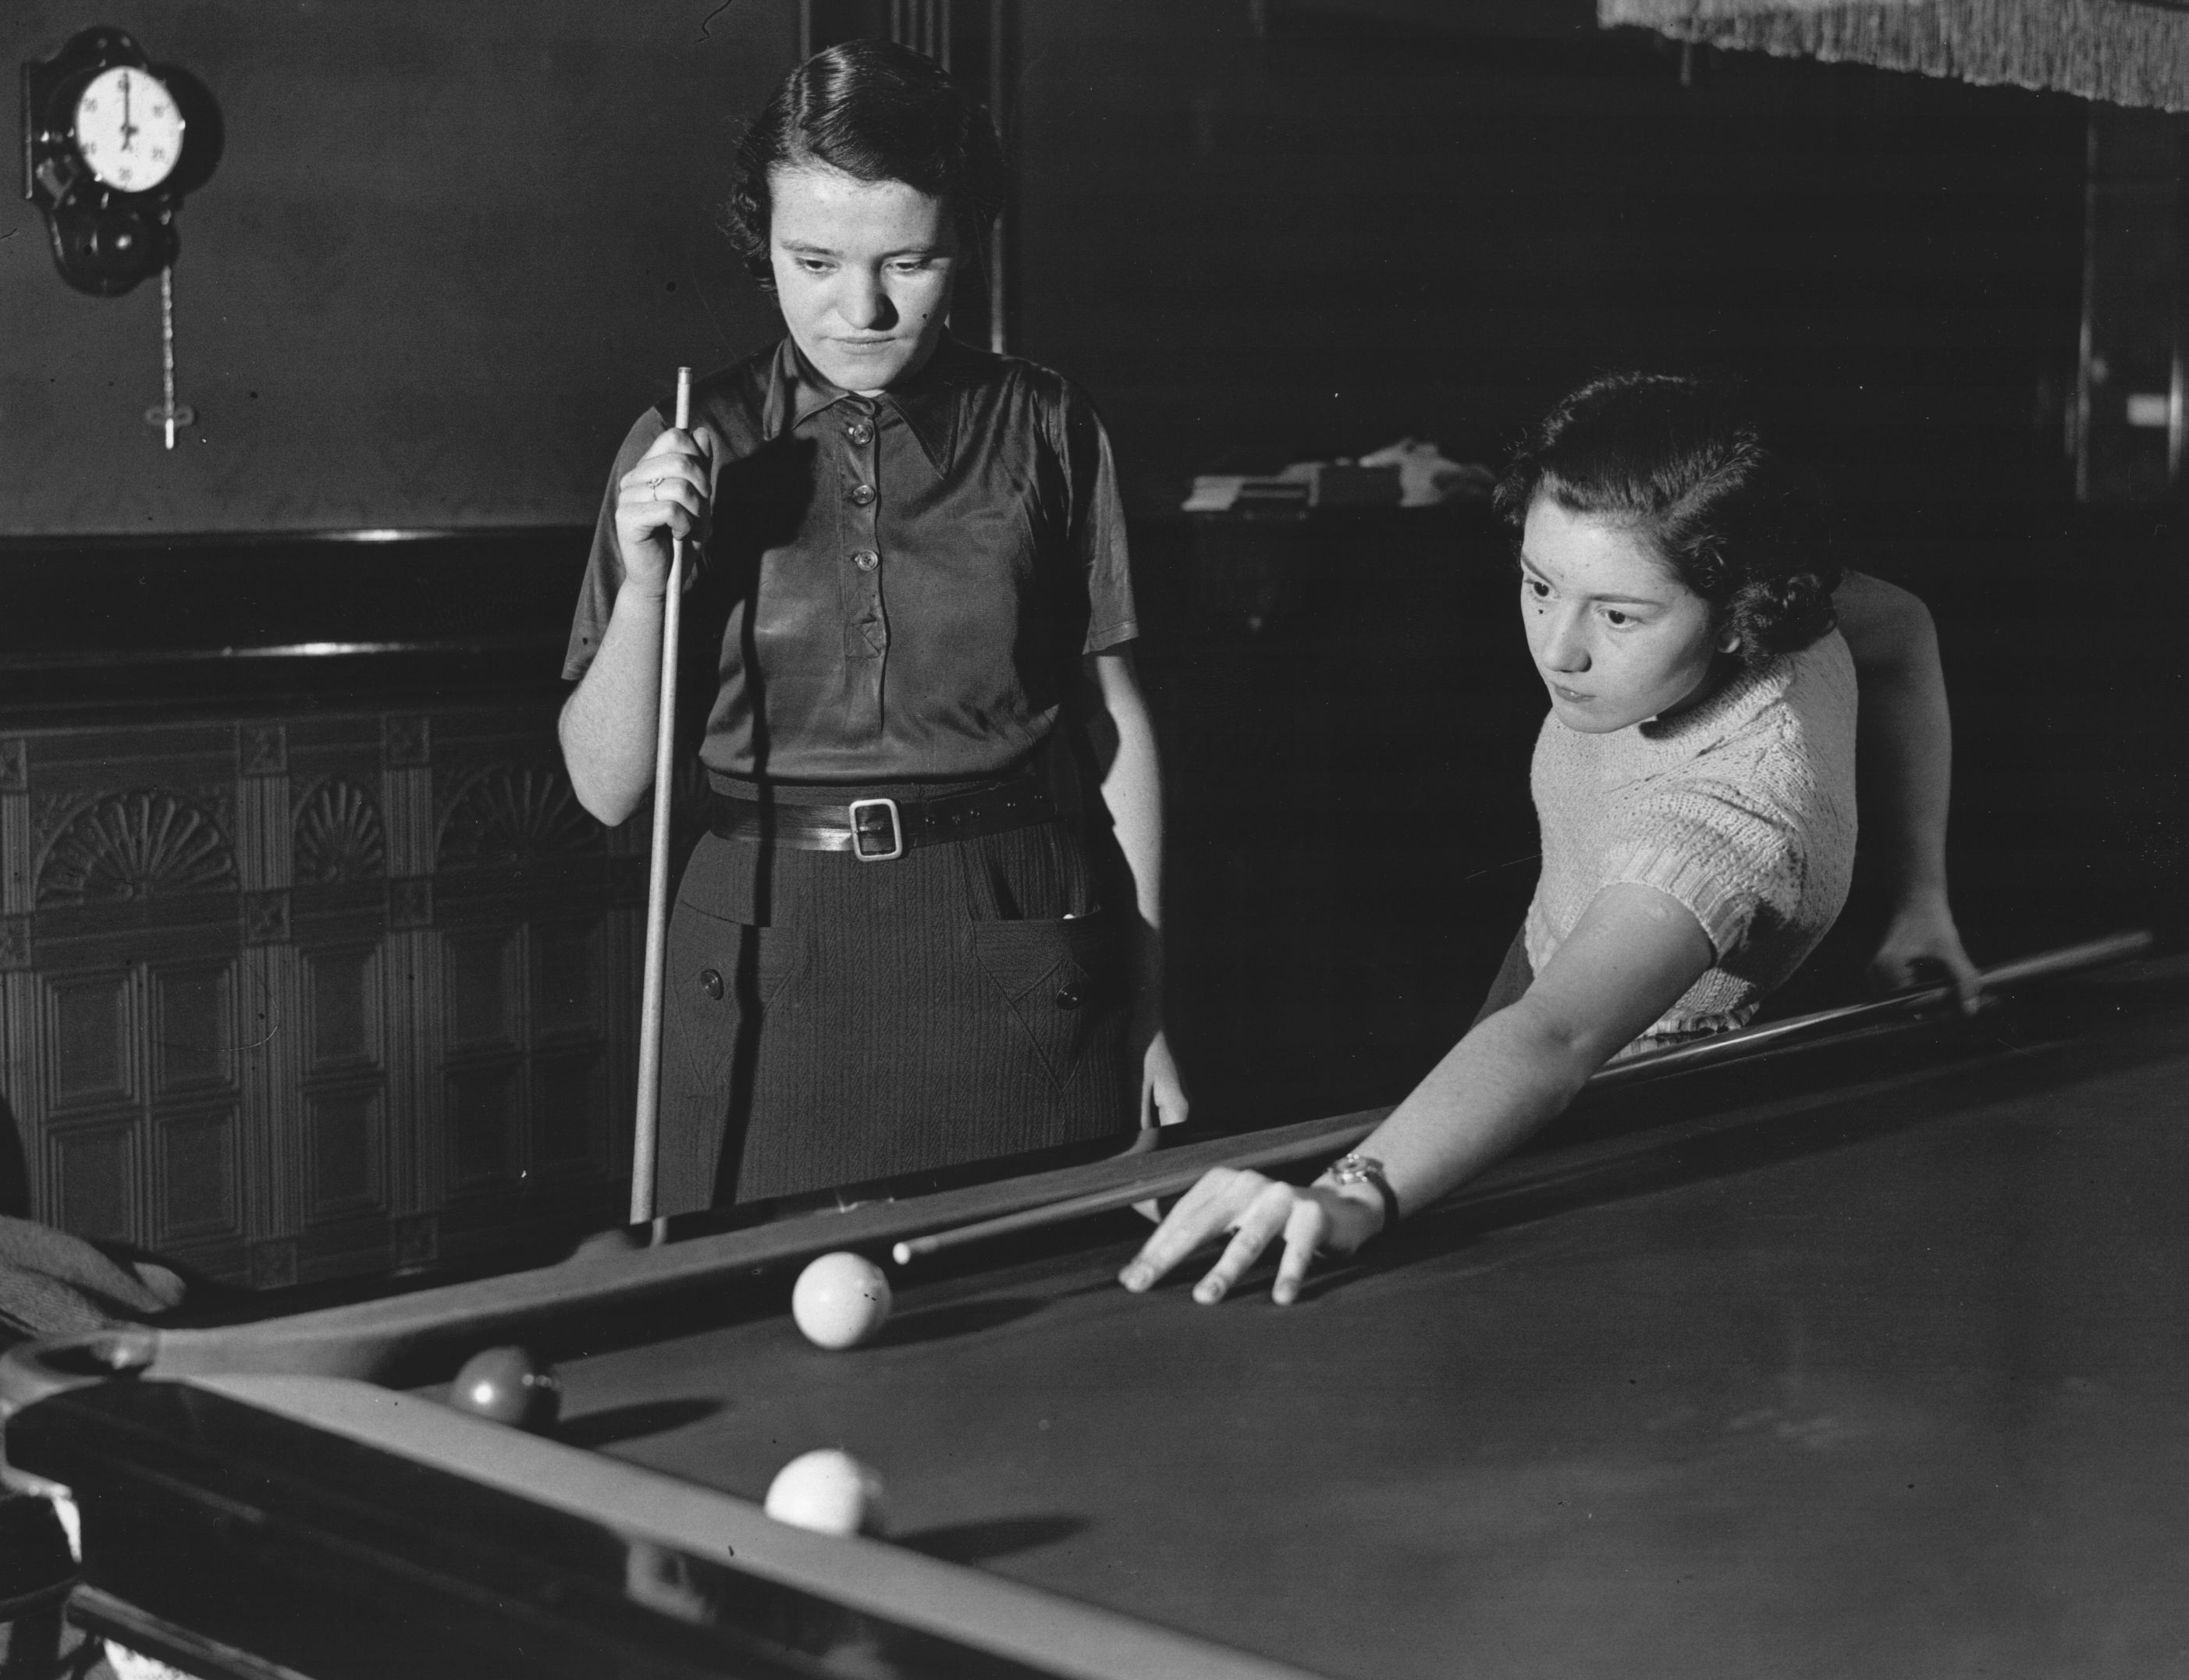 4th January 1934:  Helen McDougall prepares to play a tricky shot  at the women's billiard hall in Soho, while her mother watches.  (Photo by Keystone/Hulton Archive/Getty Images)